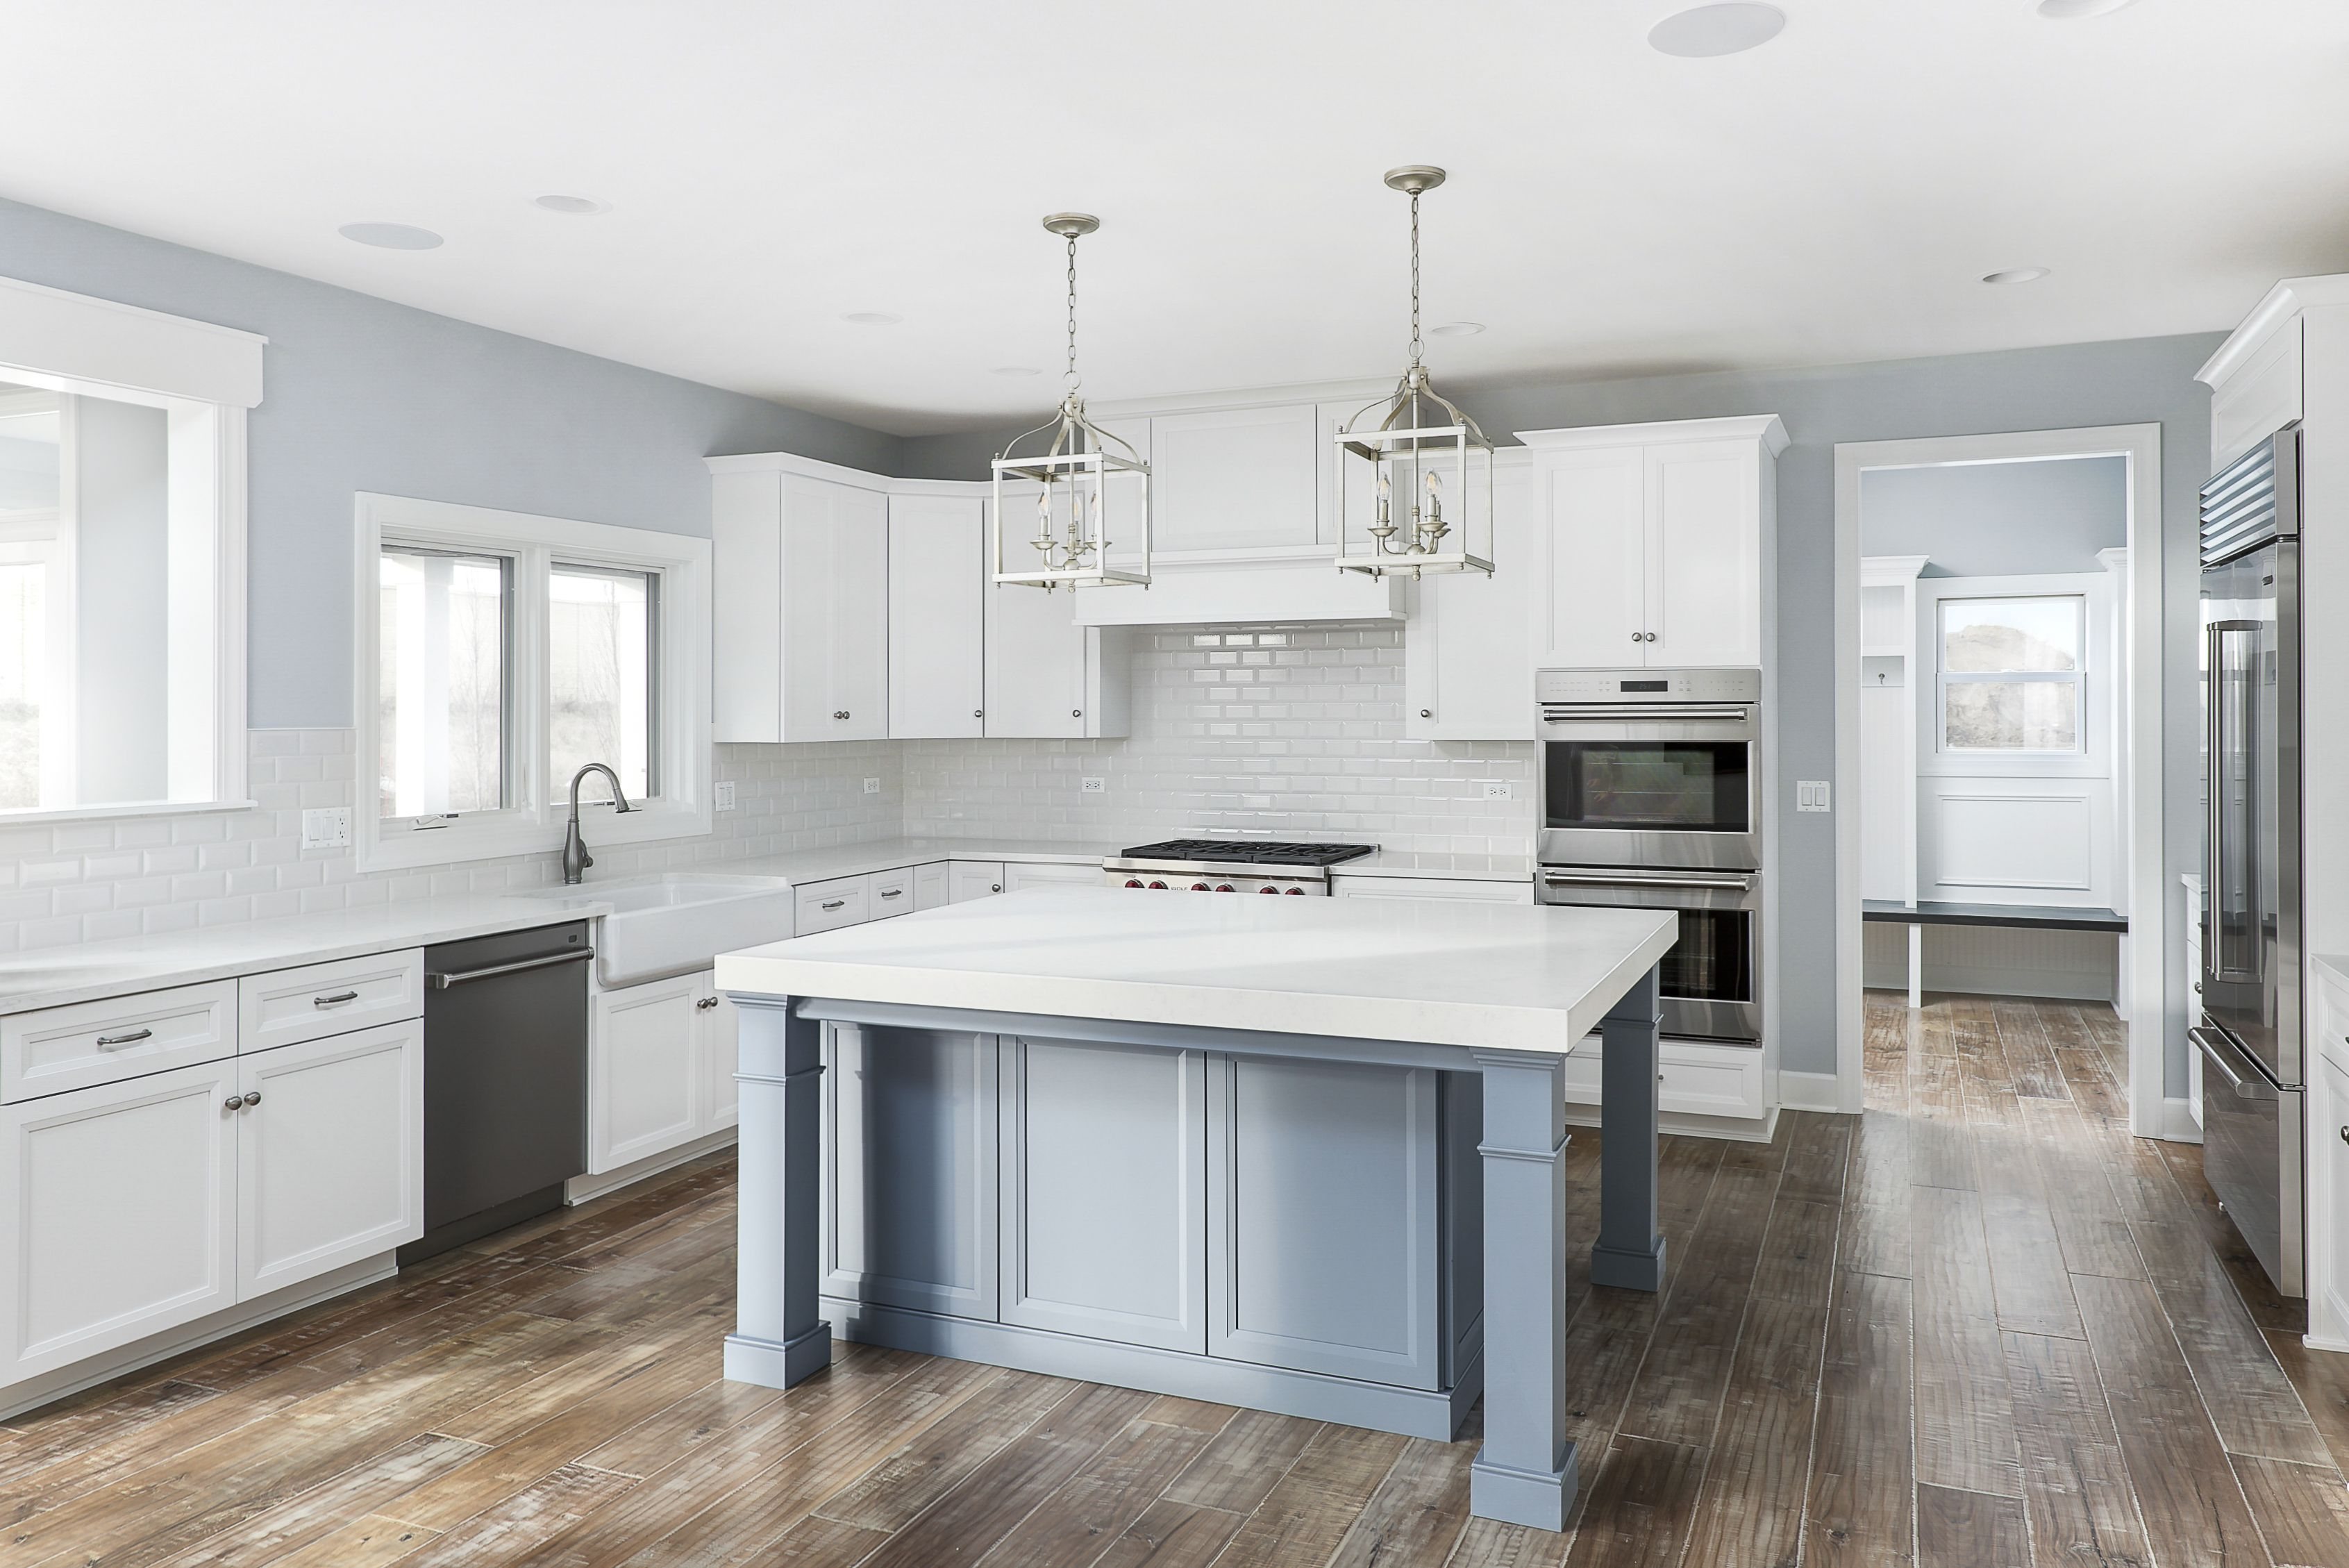 White Cabinets And Blue Gray Island Combine For A Casual Elegance In This Custom Built Home By King S Court Bu Custom Homes Kitchen Remodel Custom Home Designs